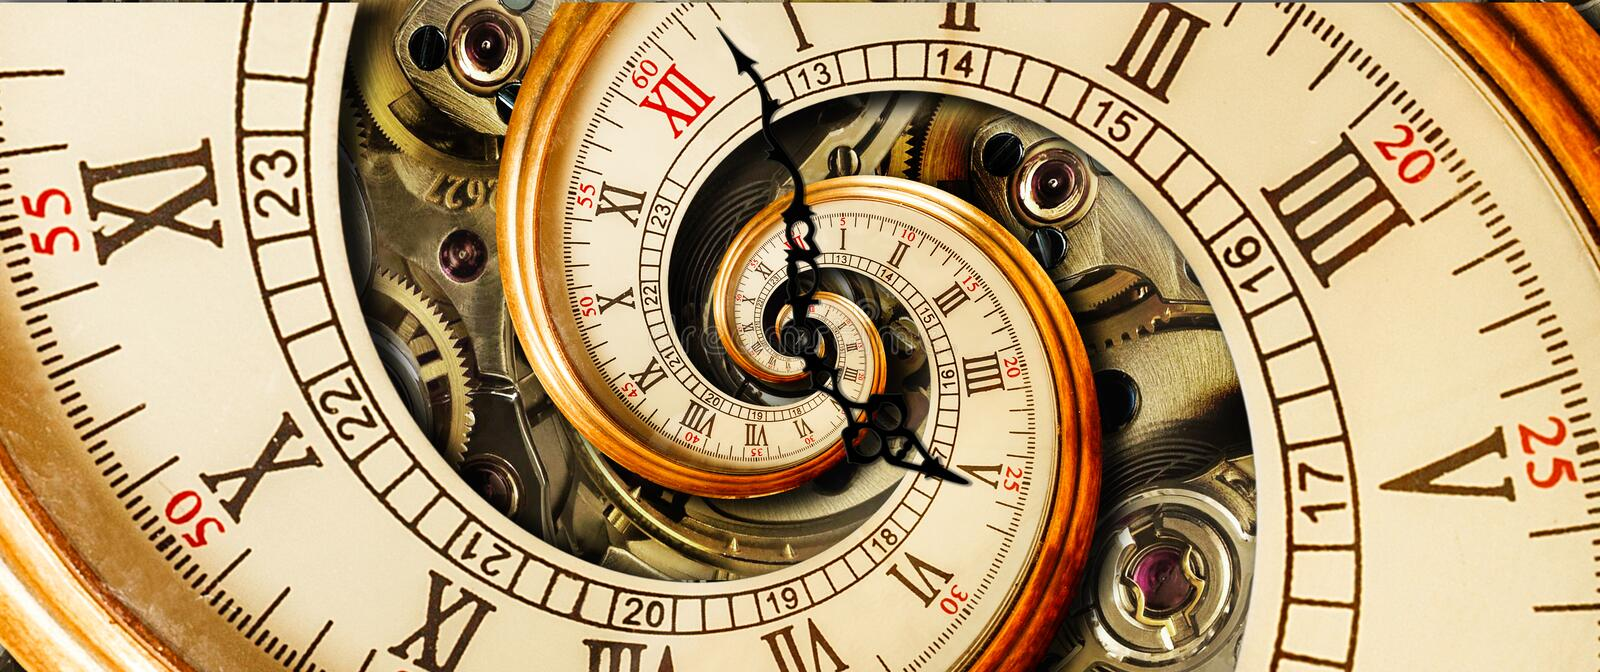 Download Antique Old Clock Abstract Fractal Spiral. Watch Classic Clock Mechanism Unusual Abstract Texture Fractal Pattern Background. Old Stock Photo - Image of face, closeup: 102897598